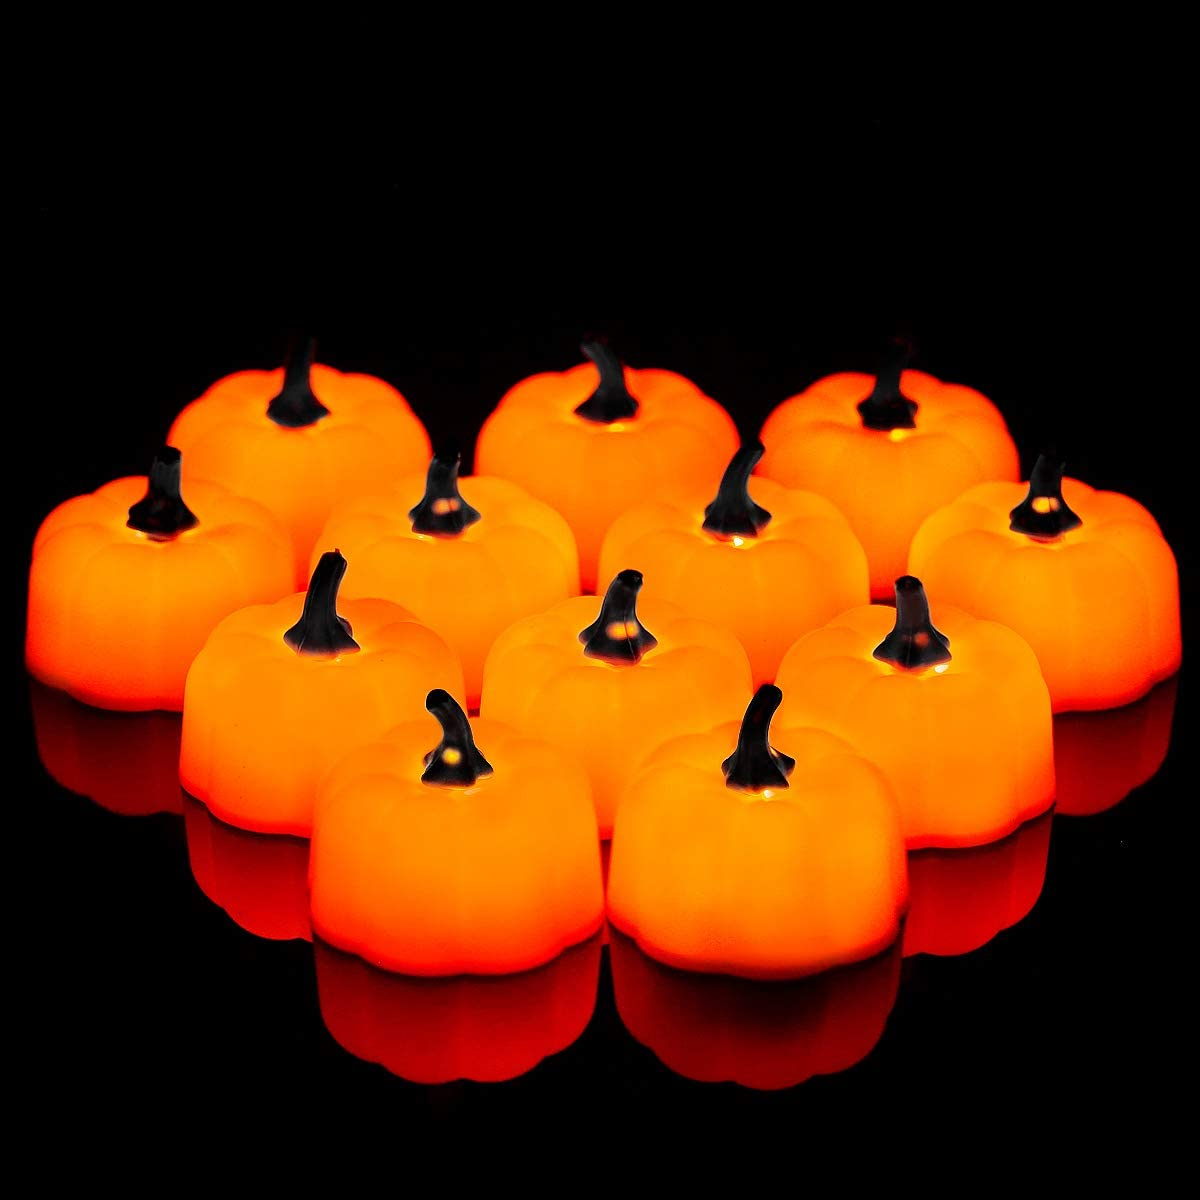 Yellow Pack of 12 Fulighture LED Electric Flameless Pumpkin Candle Lights Realistic and Bright Battery Included for Indoor Home Lighting Outdoor Decor Party Halloween